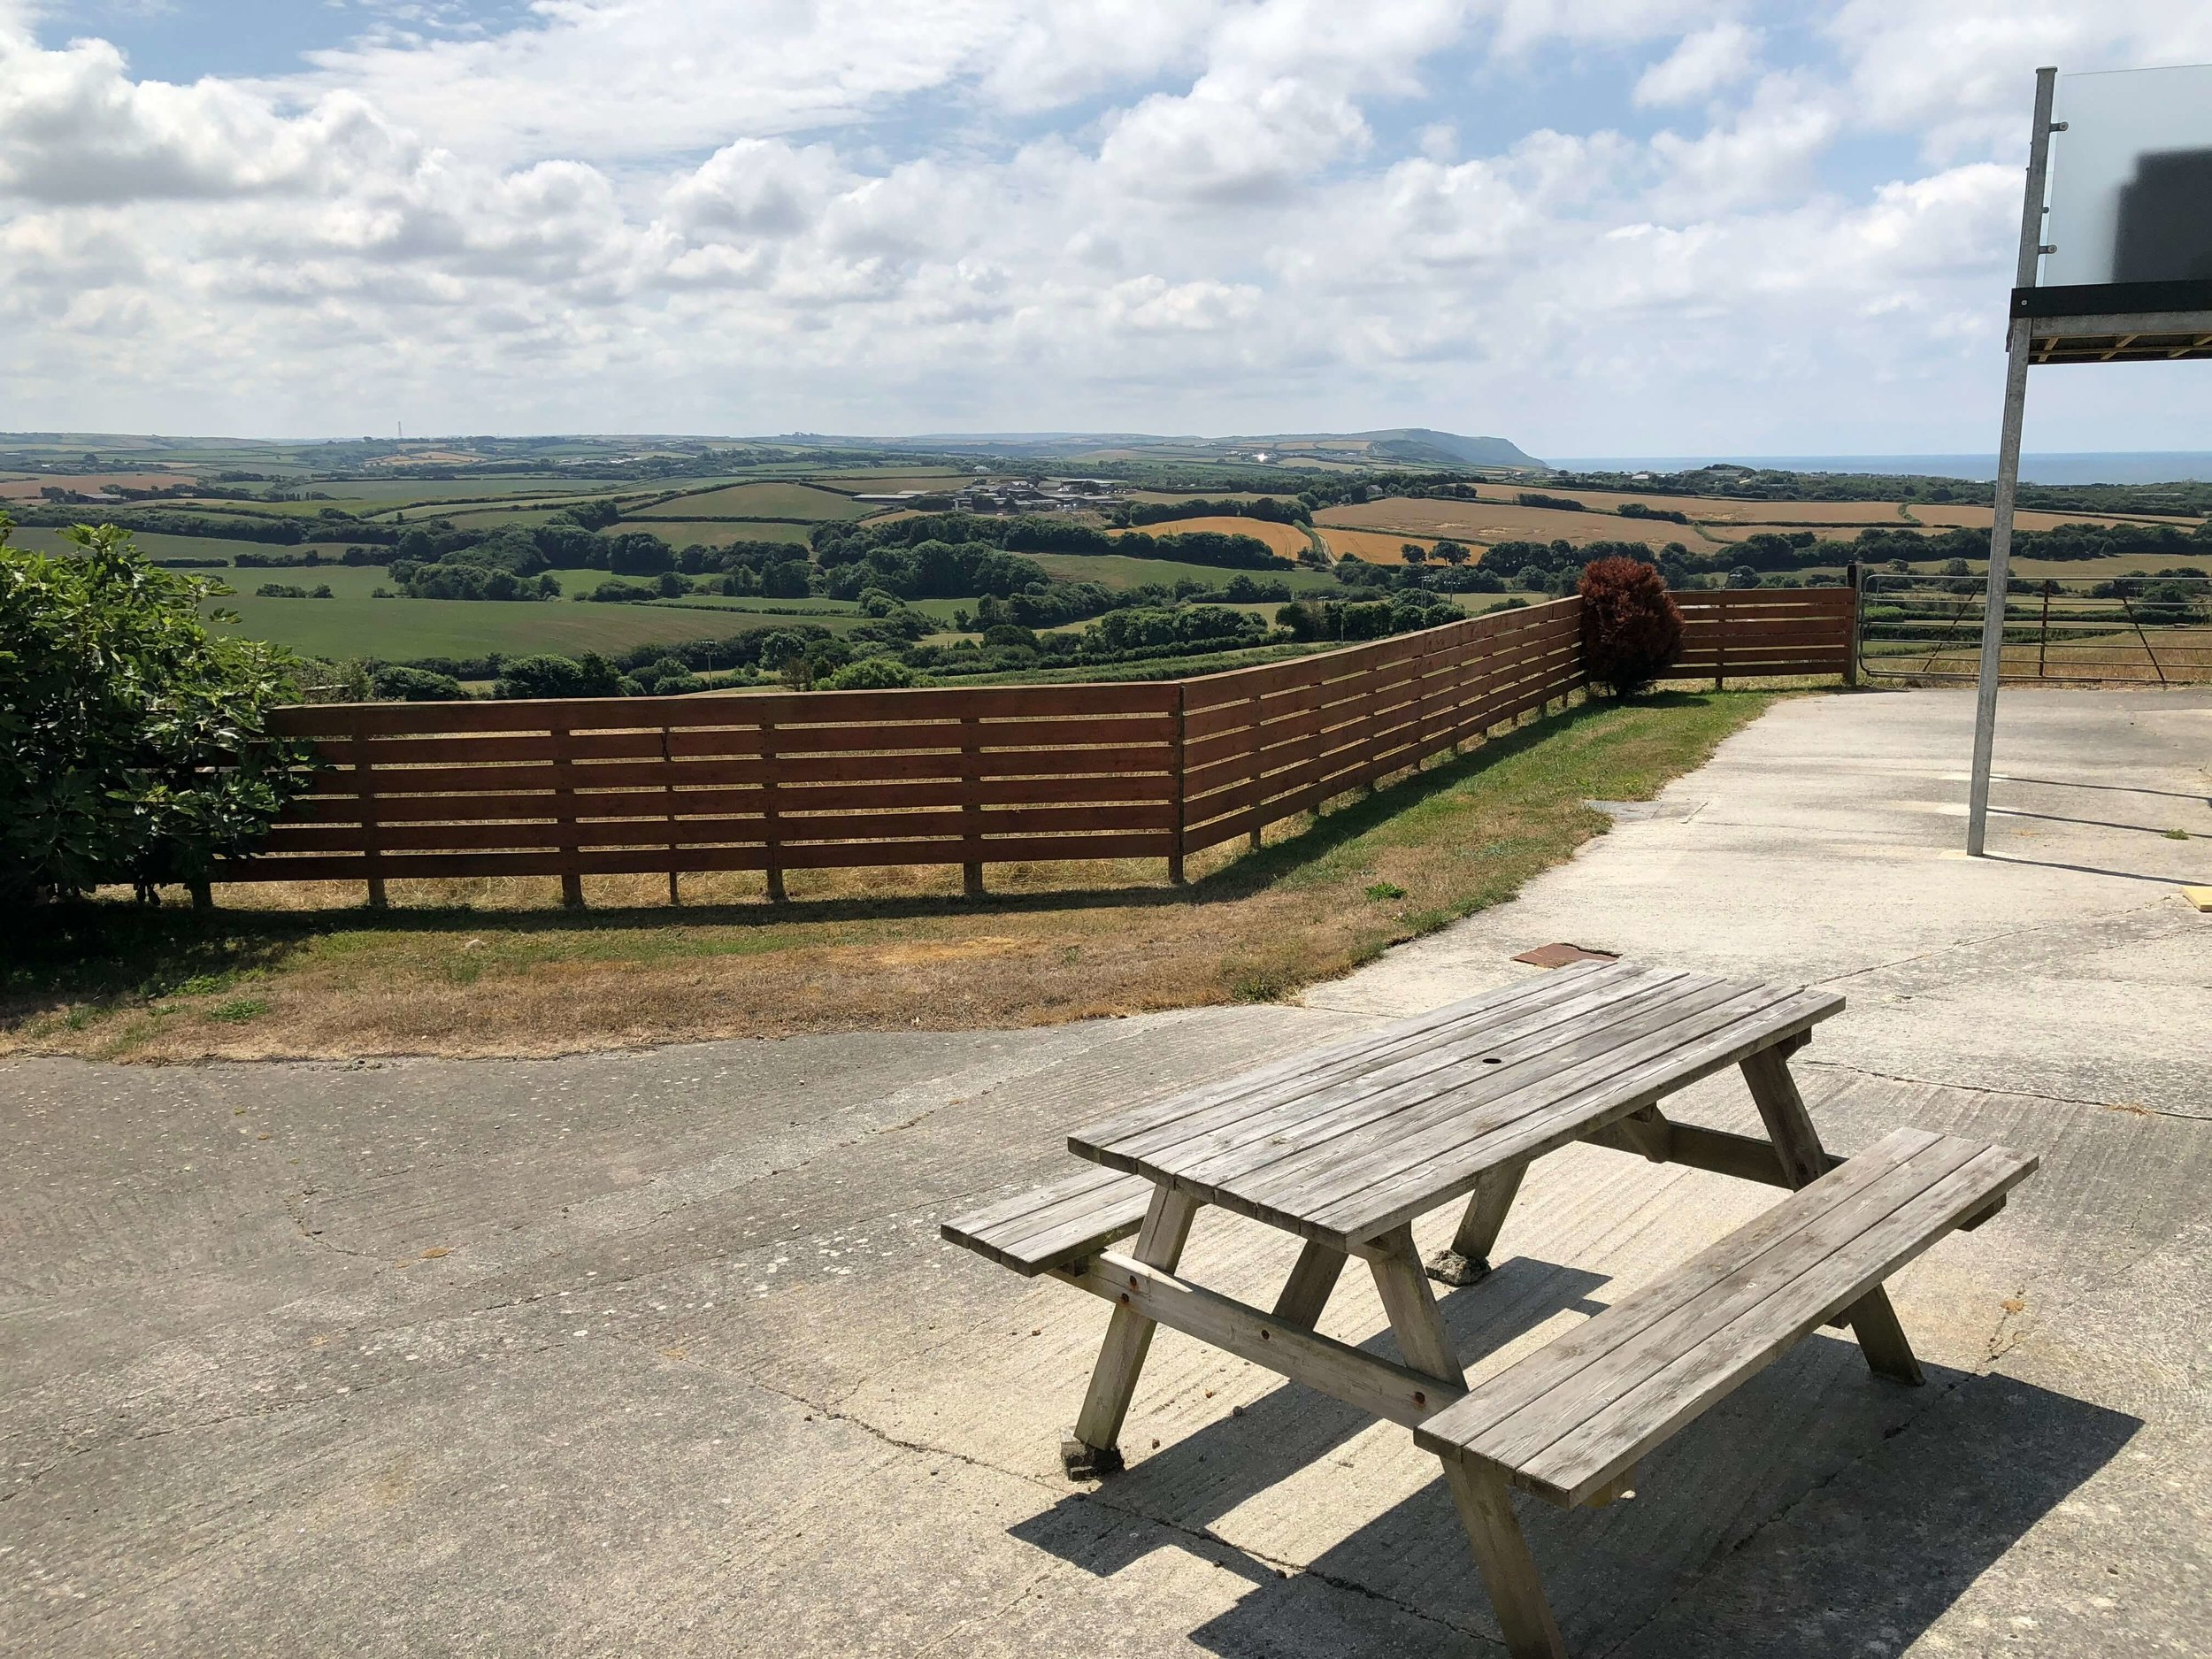 Picnic area with views towards the sea (shared)